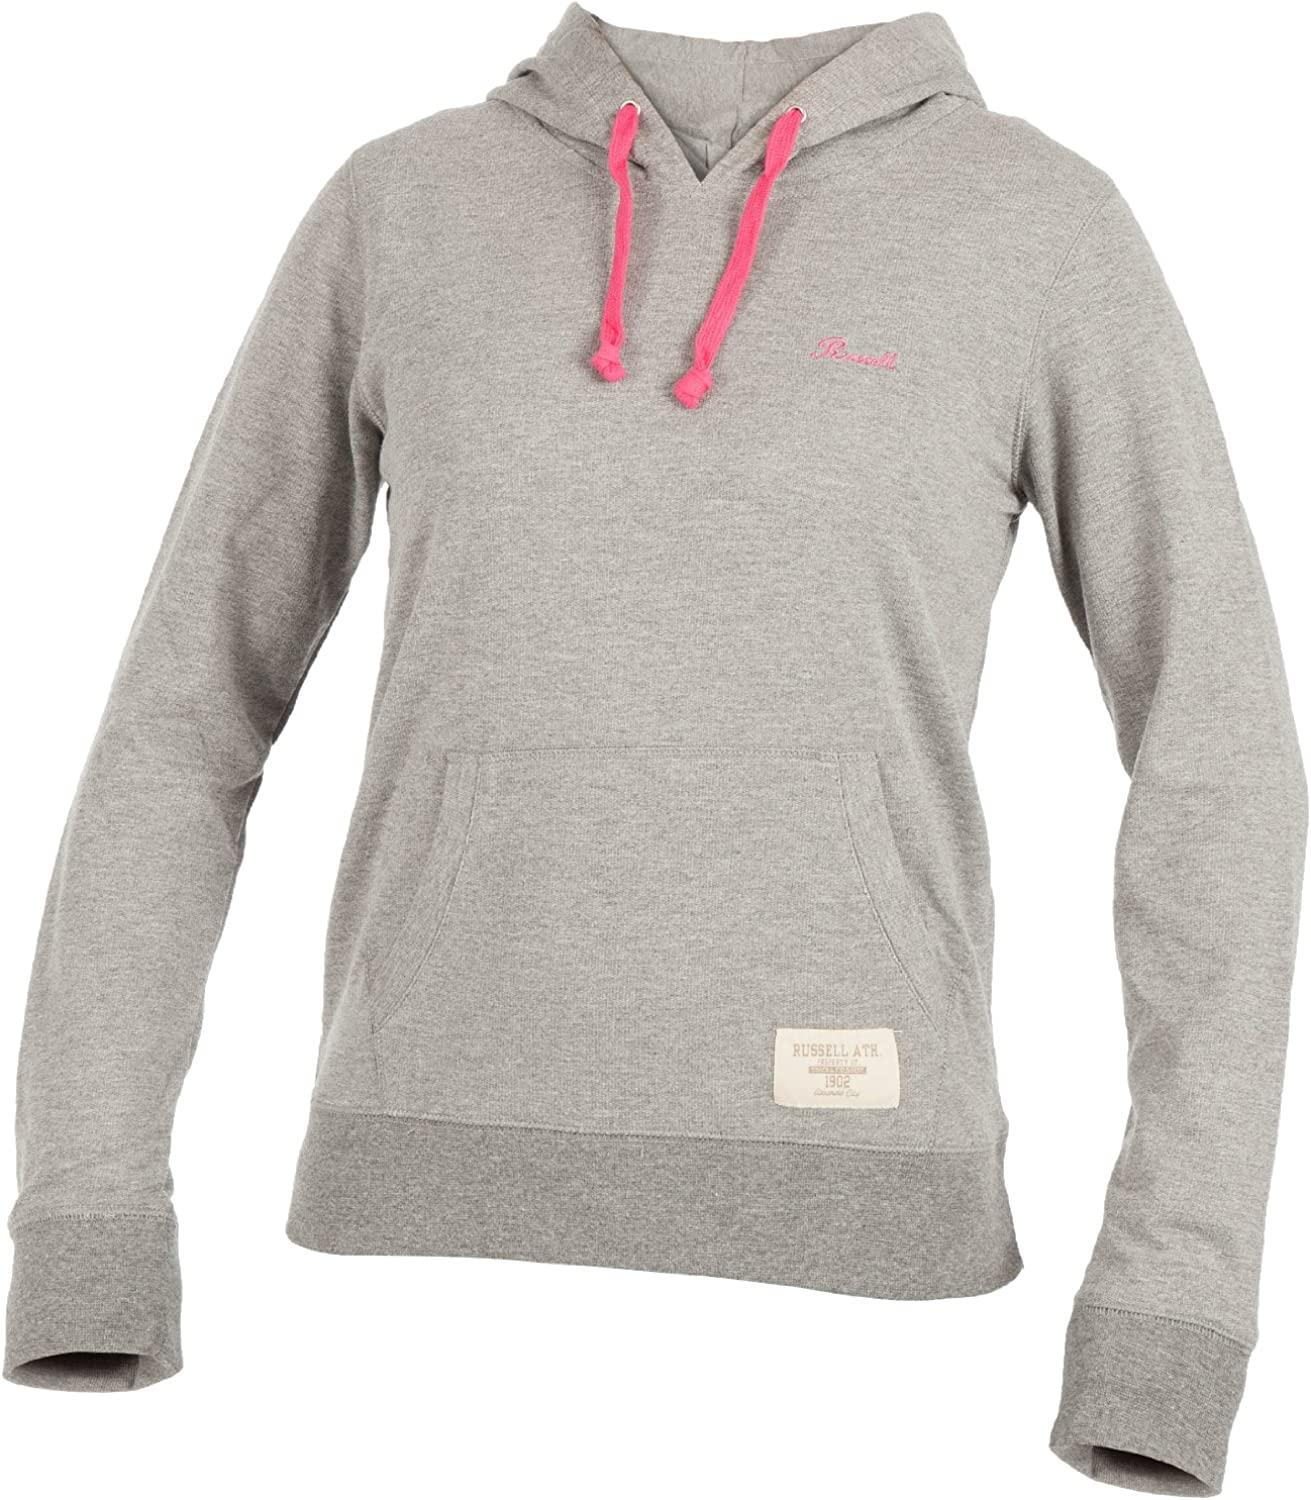 Russell Athletic Sweatshirt Hooded Pull Over - Punto Deportivo para Mujer